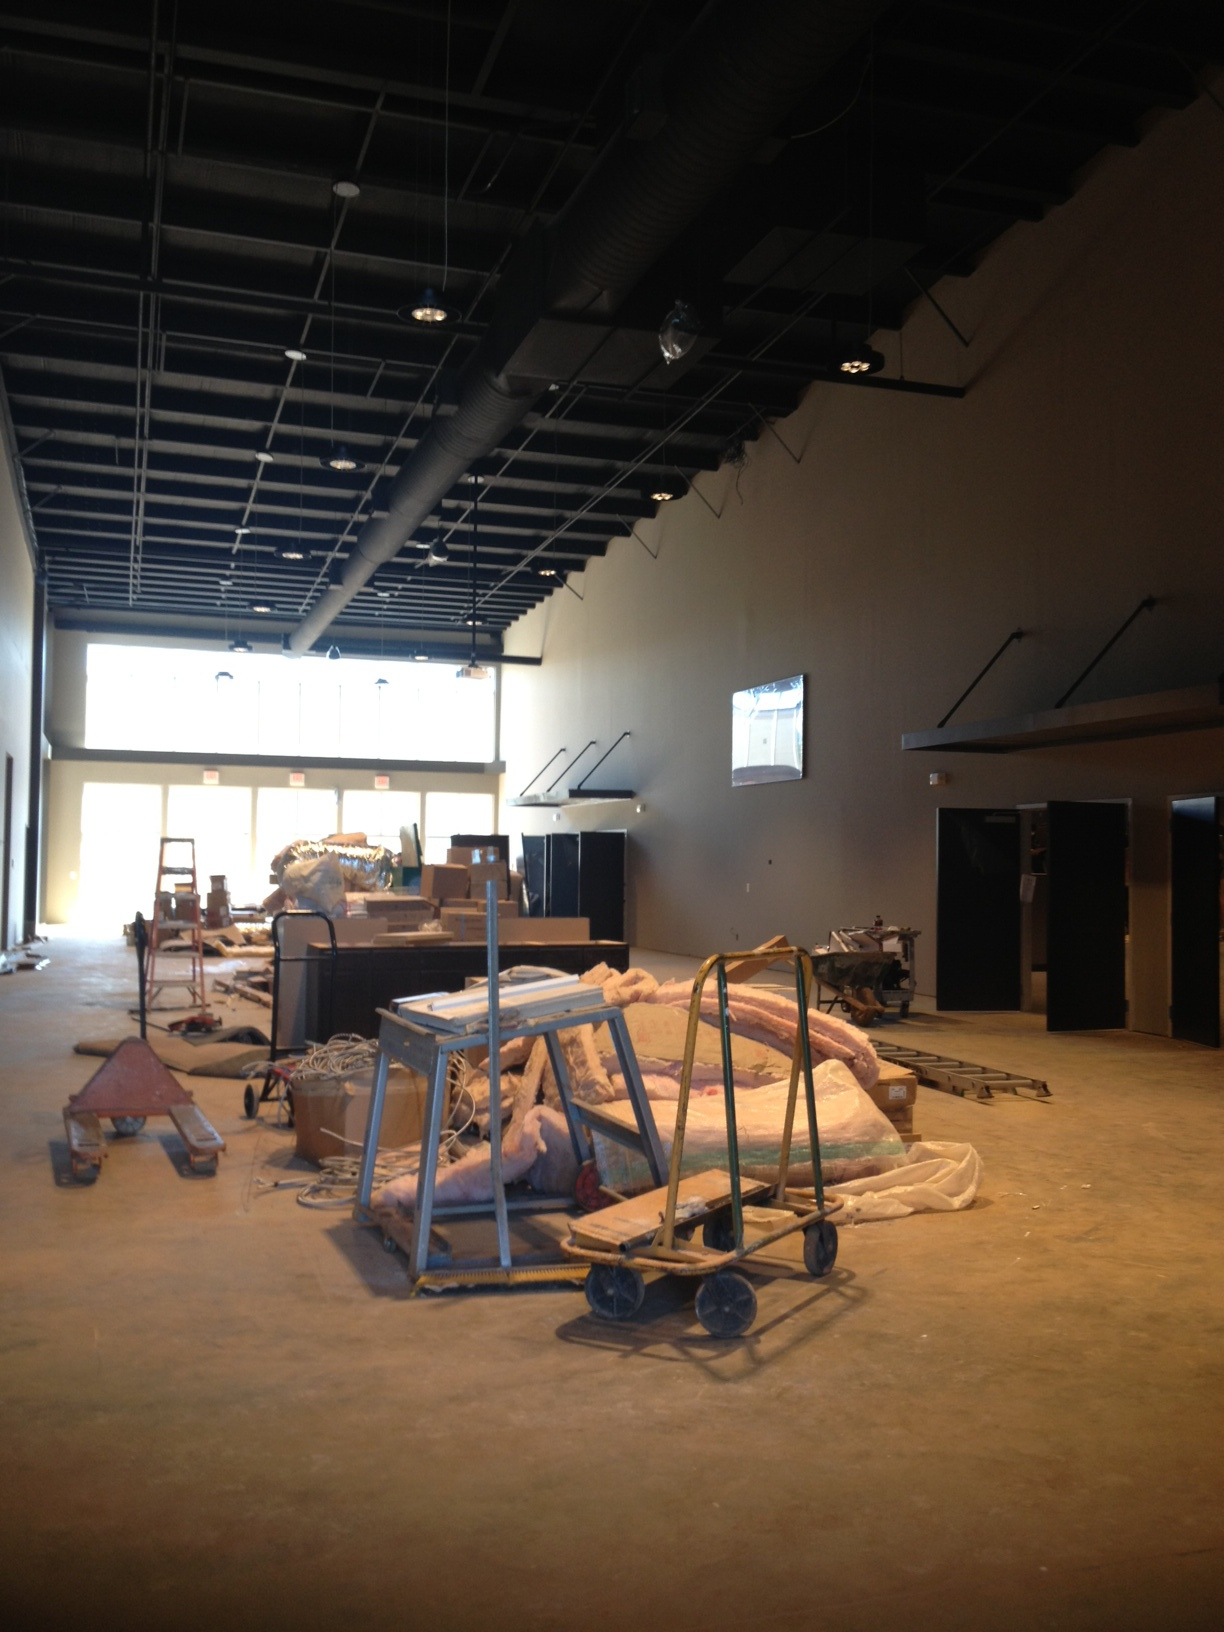 The main hallway viewing the entrances to the worship center.